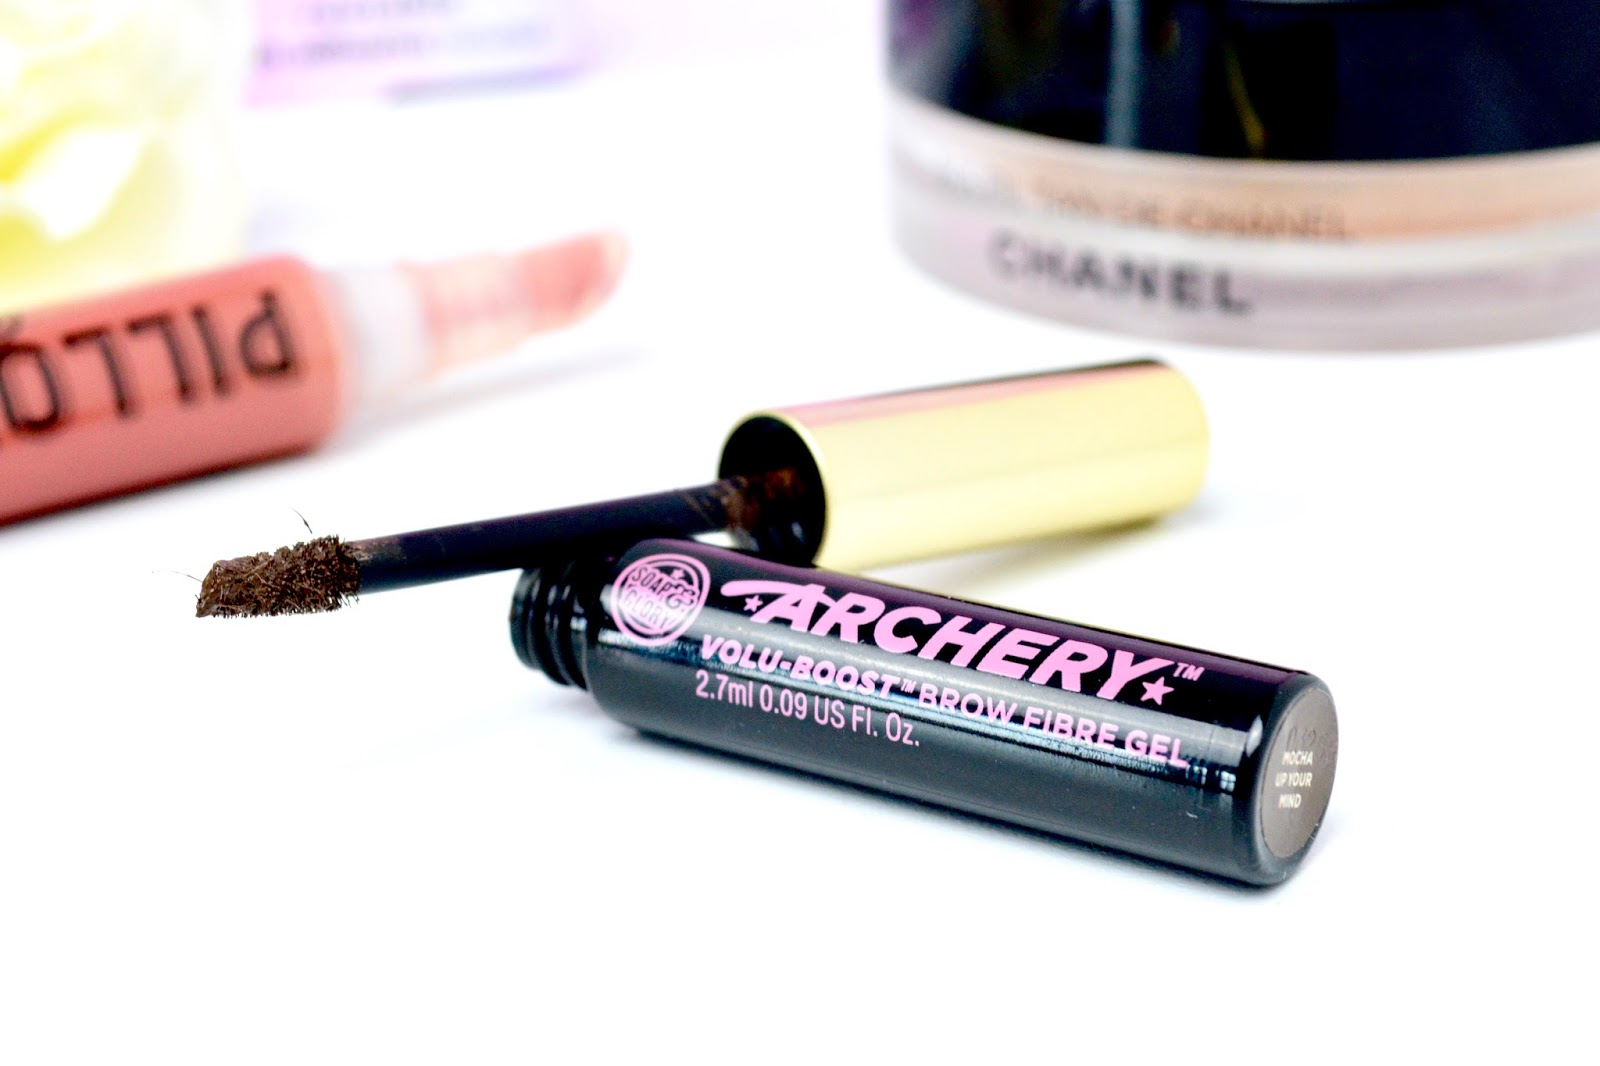 Beauty, makeup, Monthly Favourites, Monthly Beauty Favourites, Soap and Glory, Chanel, La Roche Posay, Girls With Attitude, Girls With Attitude Fairytale Brushes, False Lashes, Lipgloss, Skincare